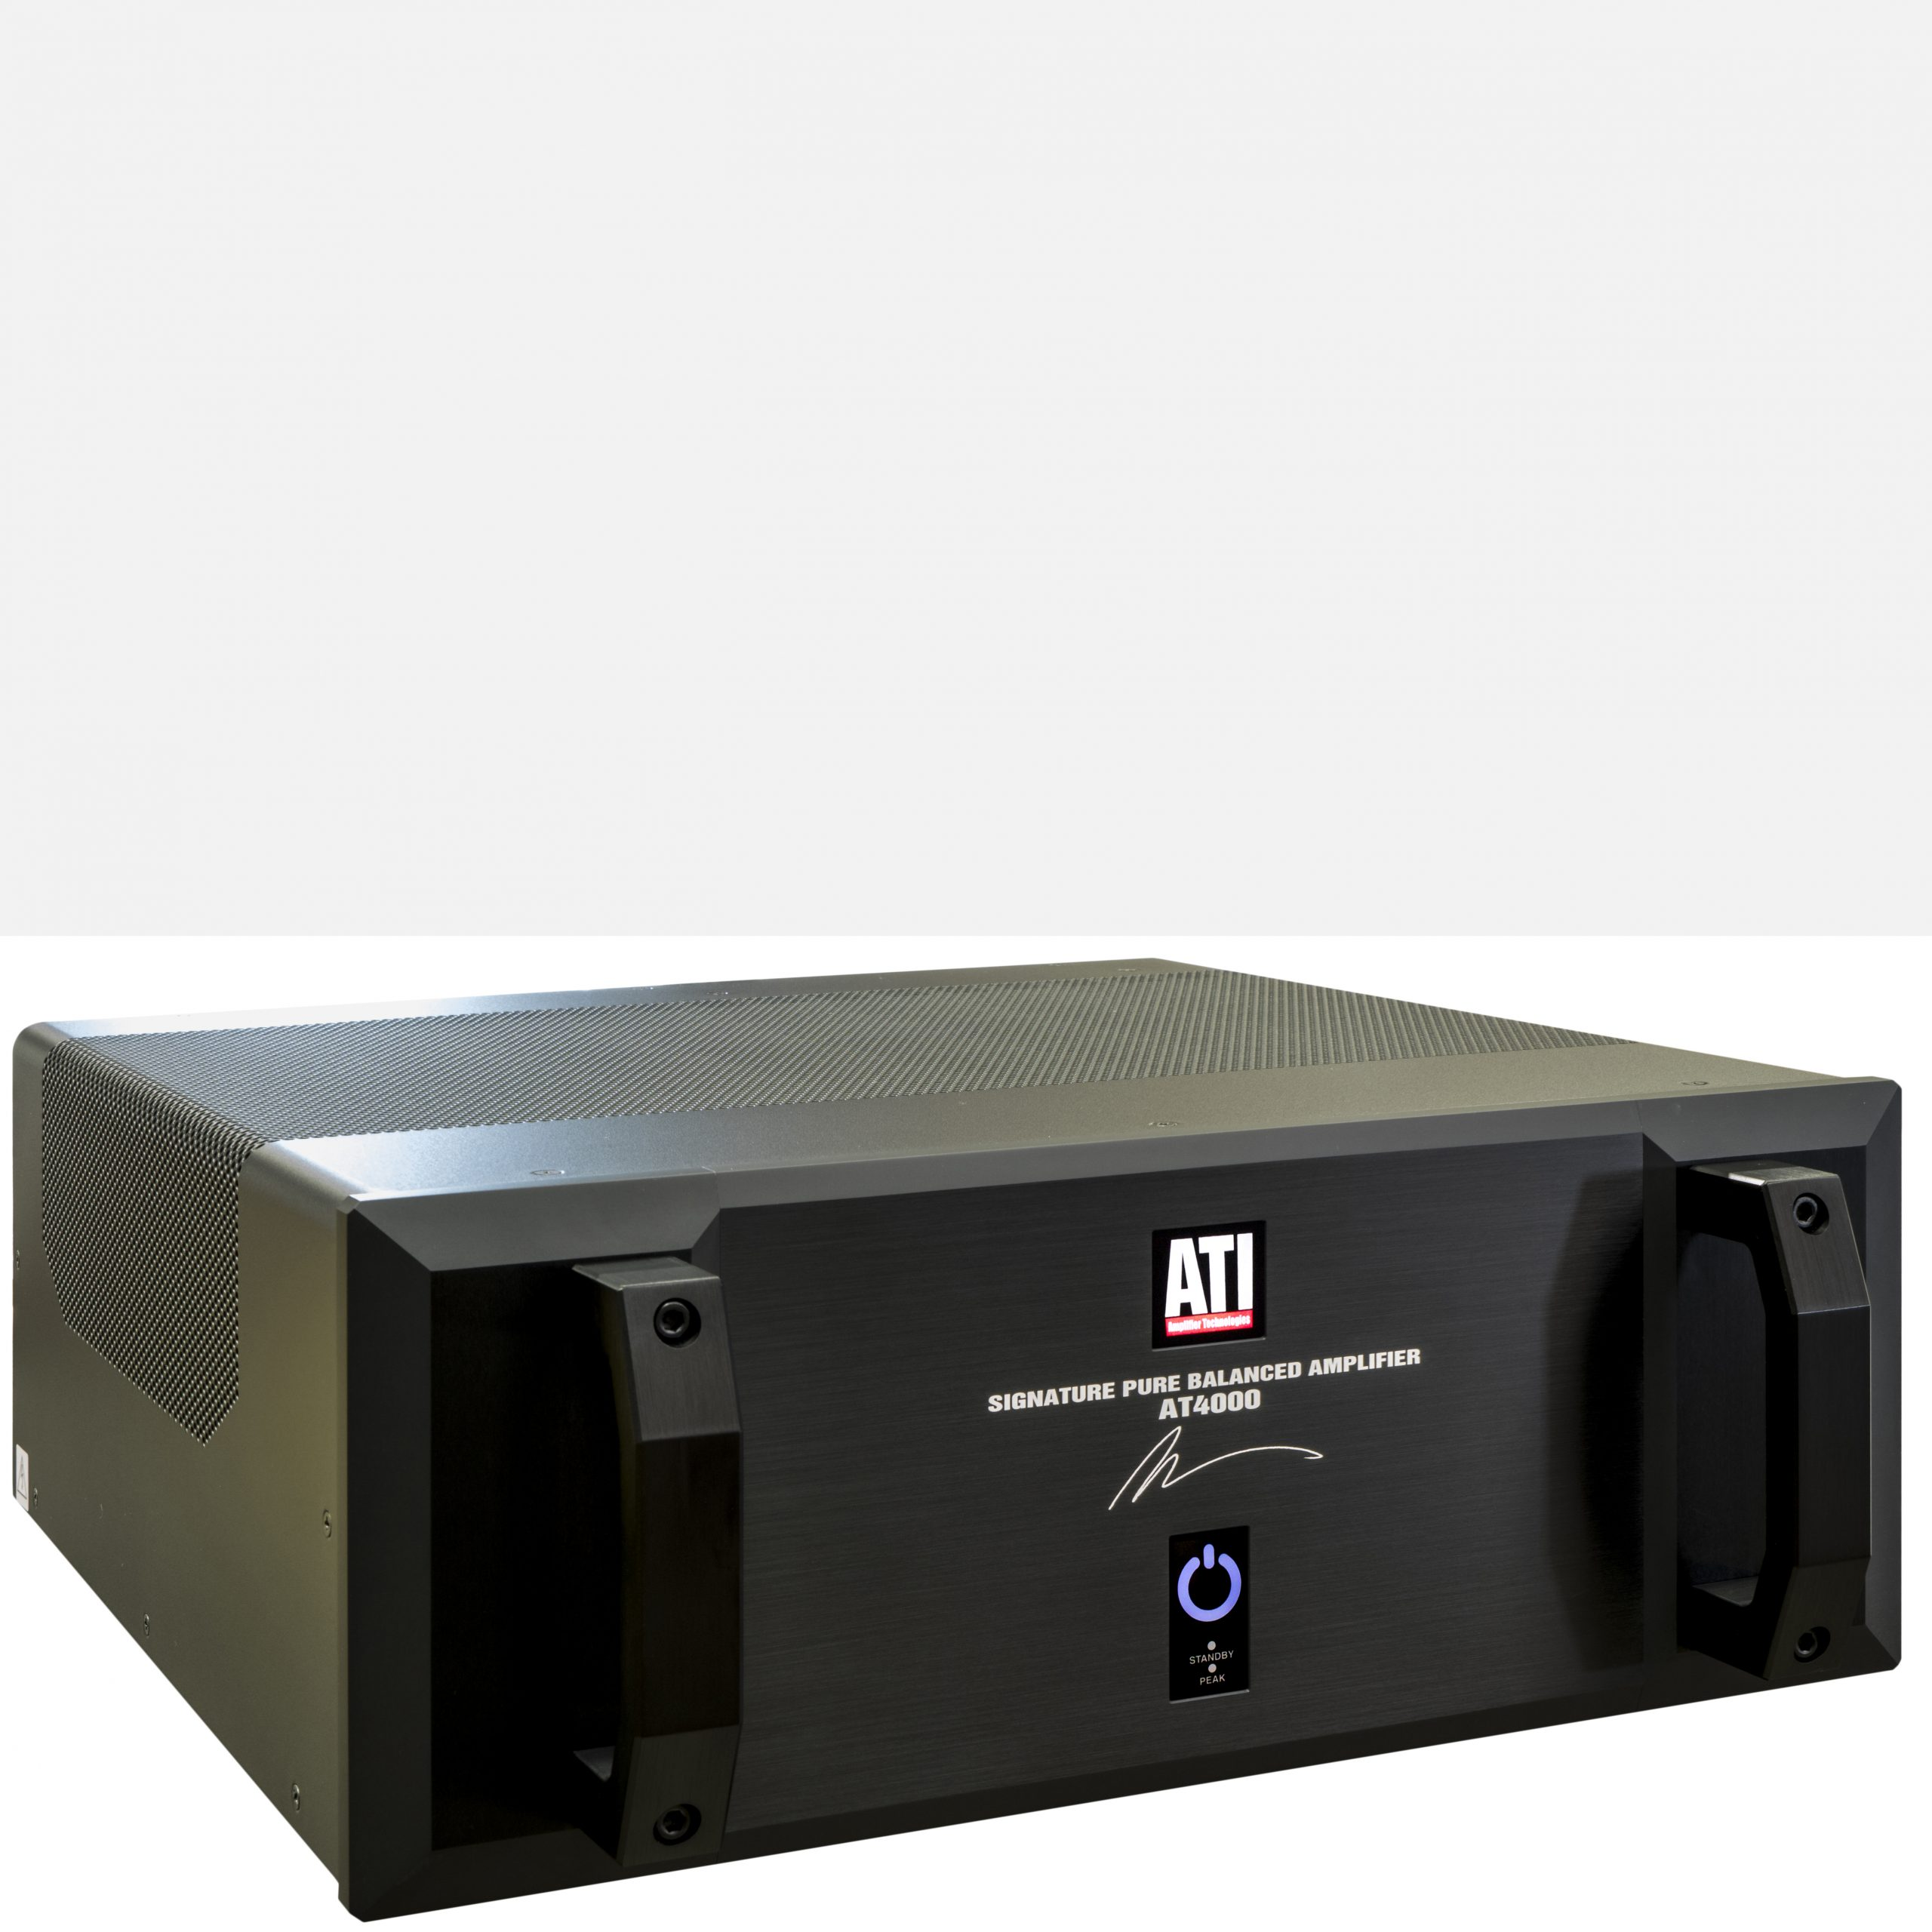 ATI AT4000 Power Amplifier